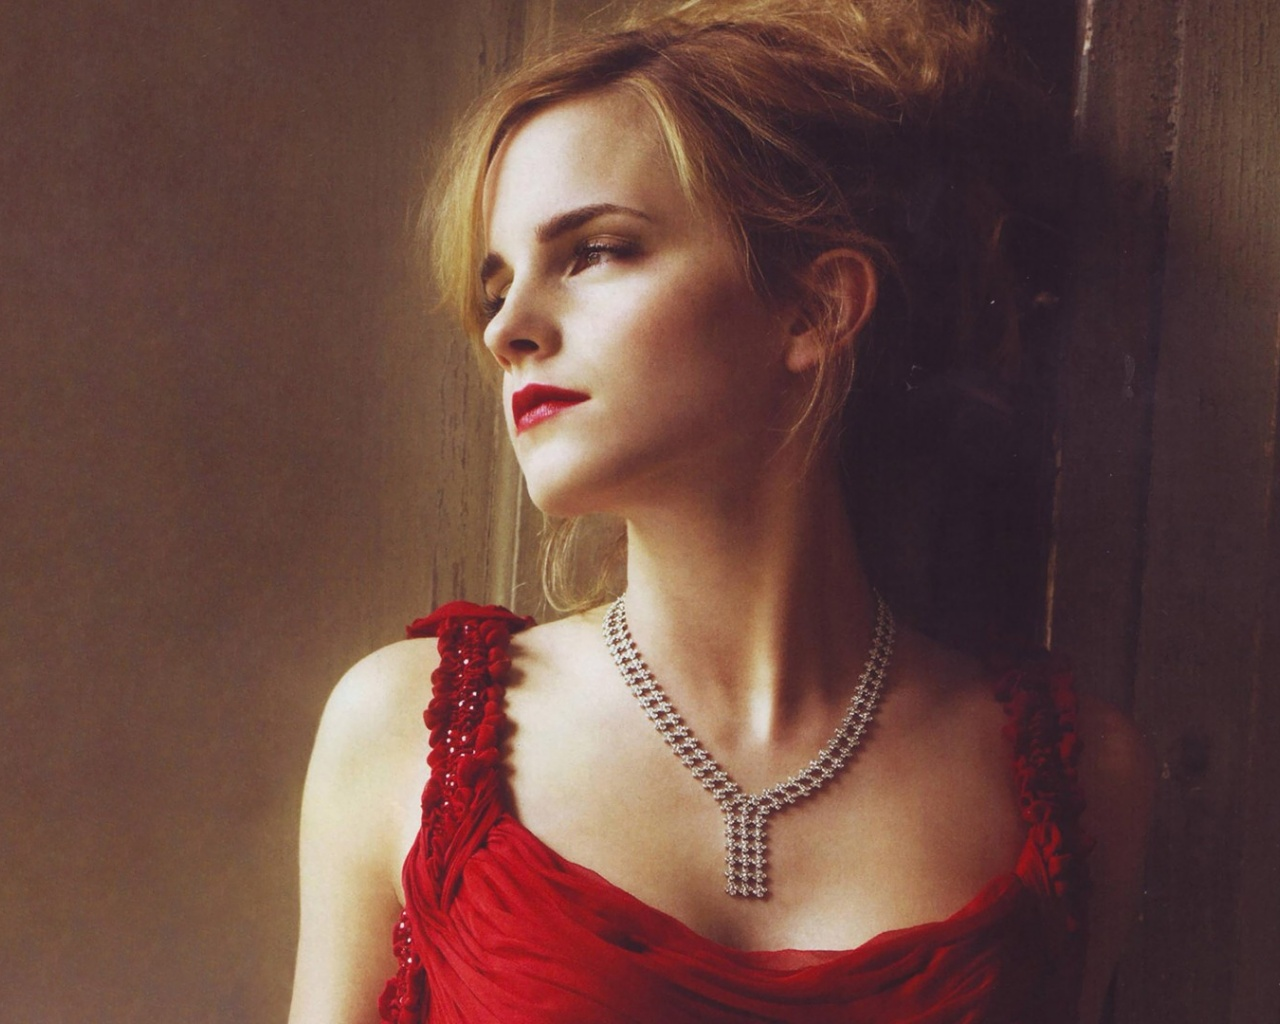 1280x1024 emma watson red dress desktop pc and mac wallpaper